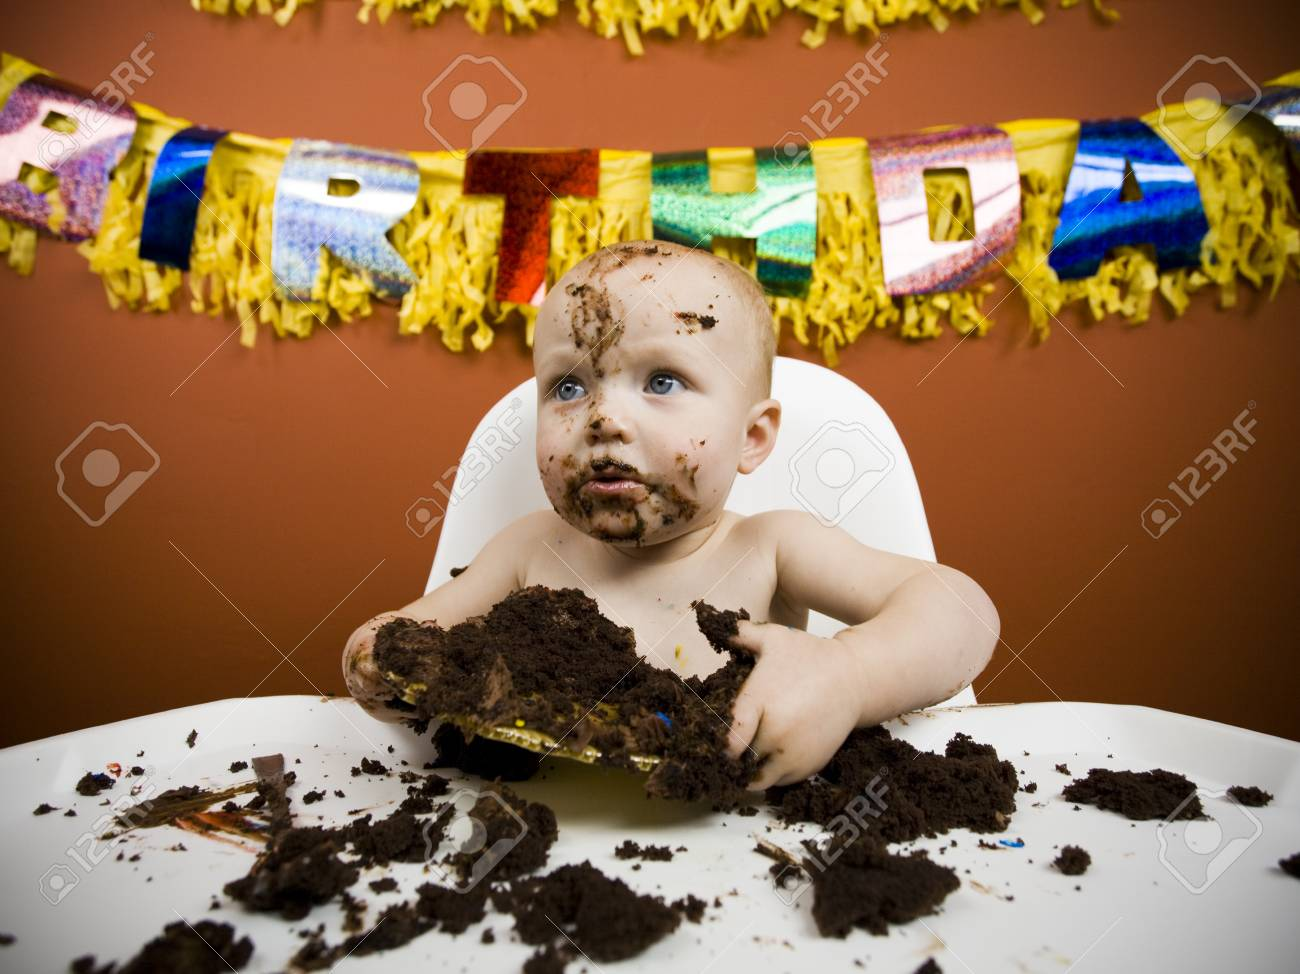 Admirable Baby Eating Birthday Cake Stock Photo Picture And Royalty Free Funny Birthday Cards Online Inifofree Goldxyz